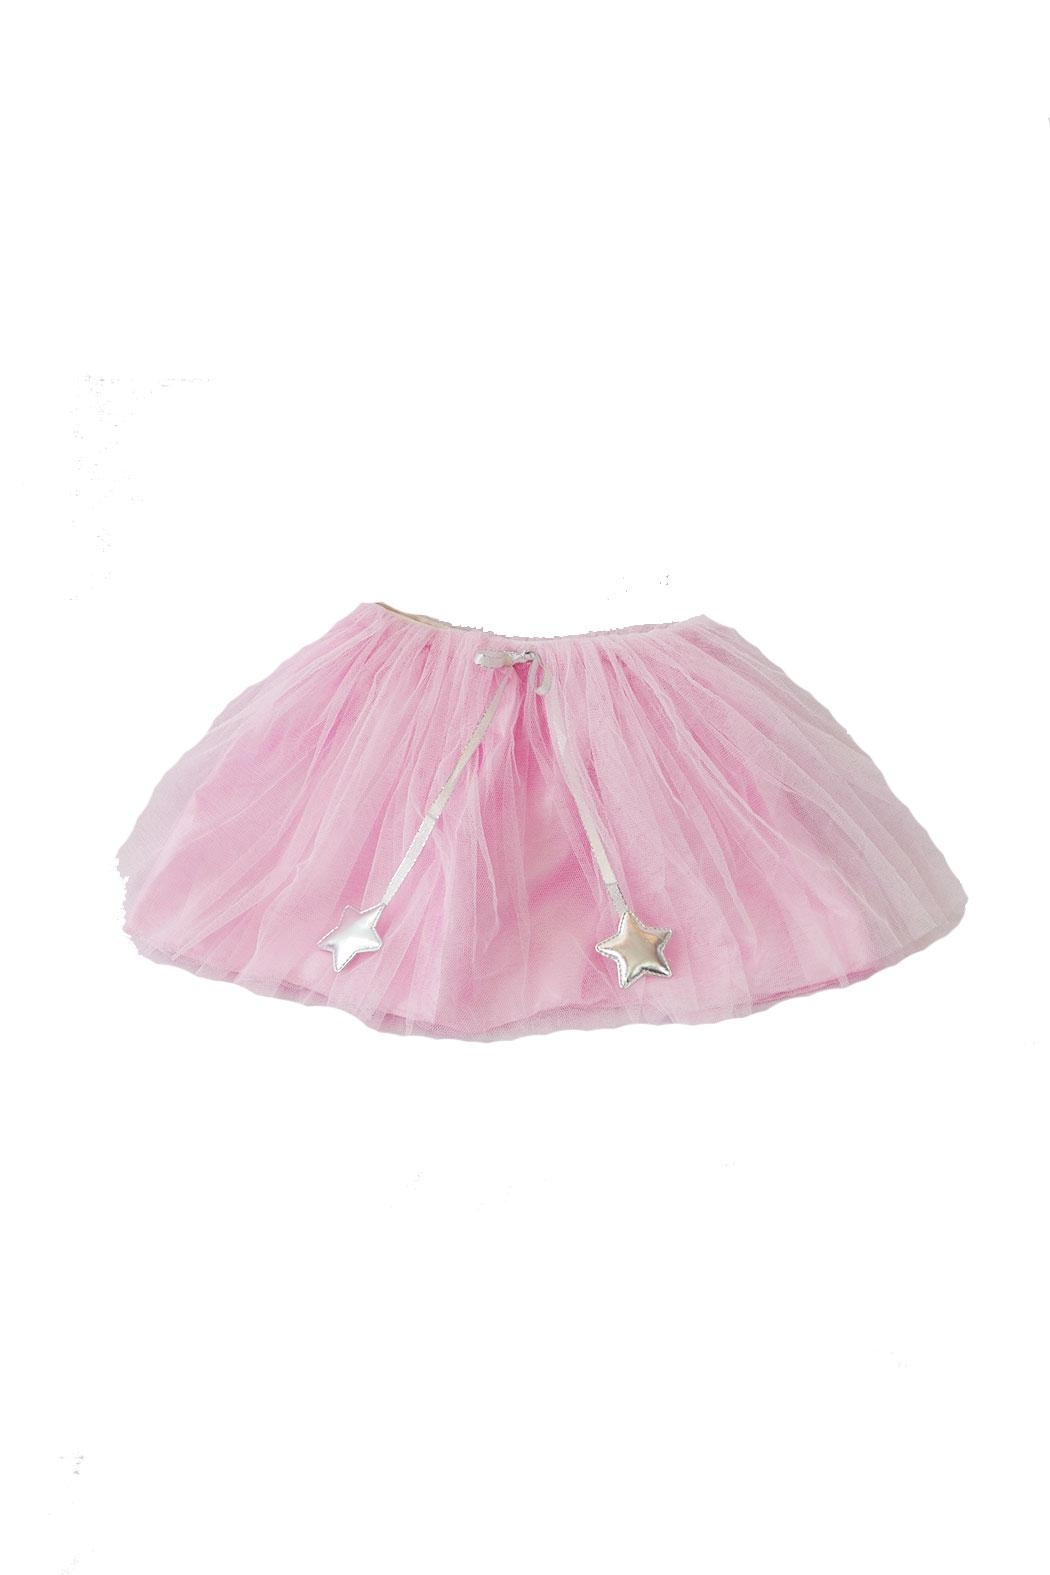 Couture Clips Shooting Star Tutu Skirt - Main Image